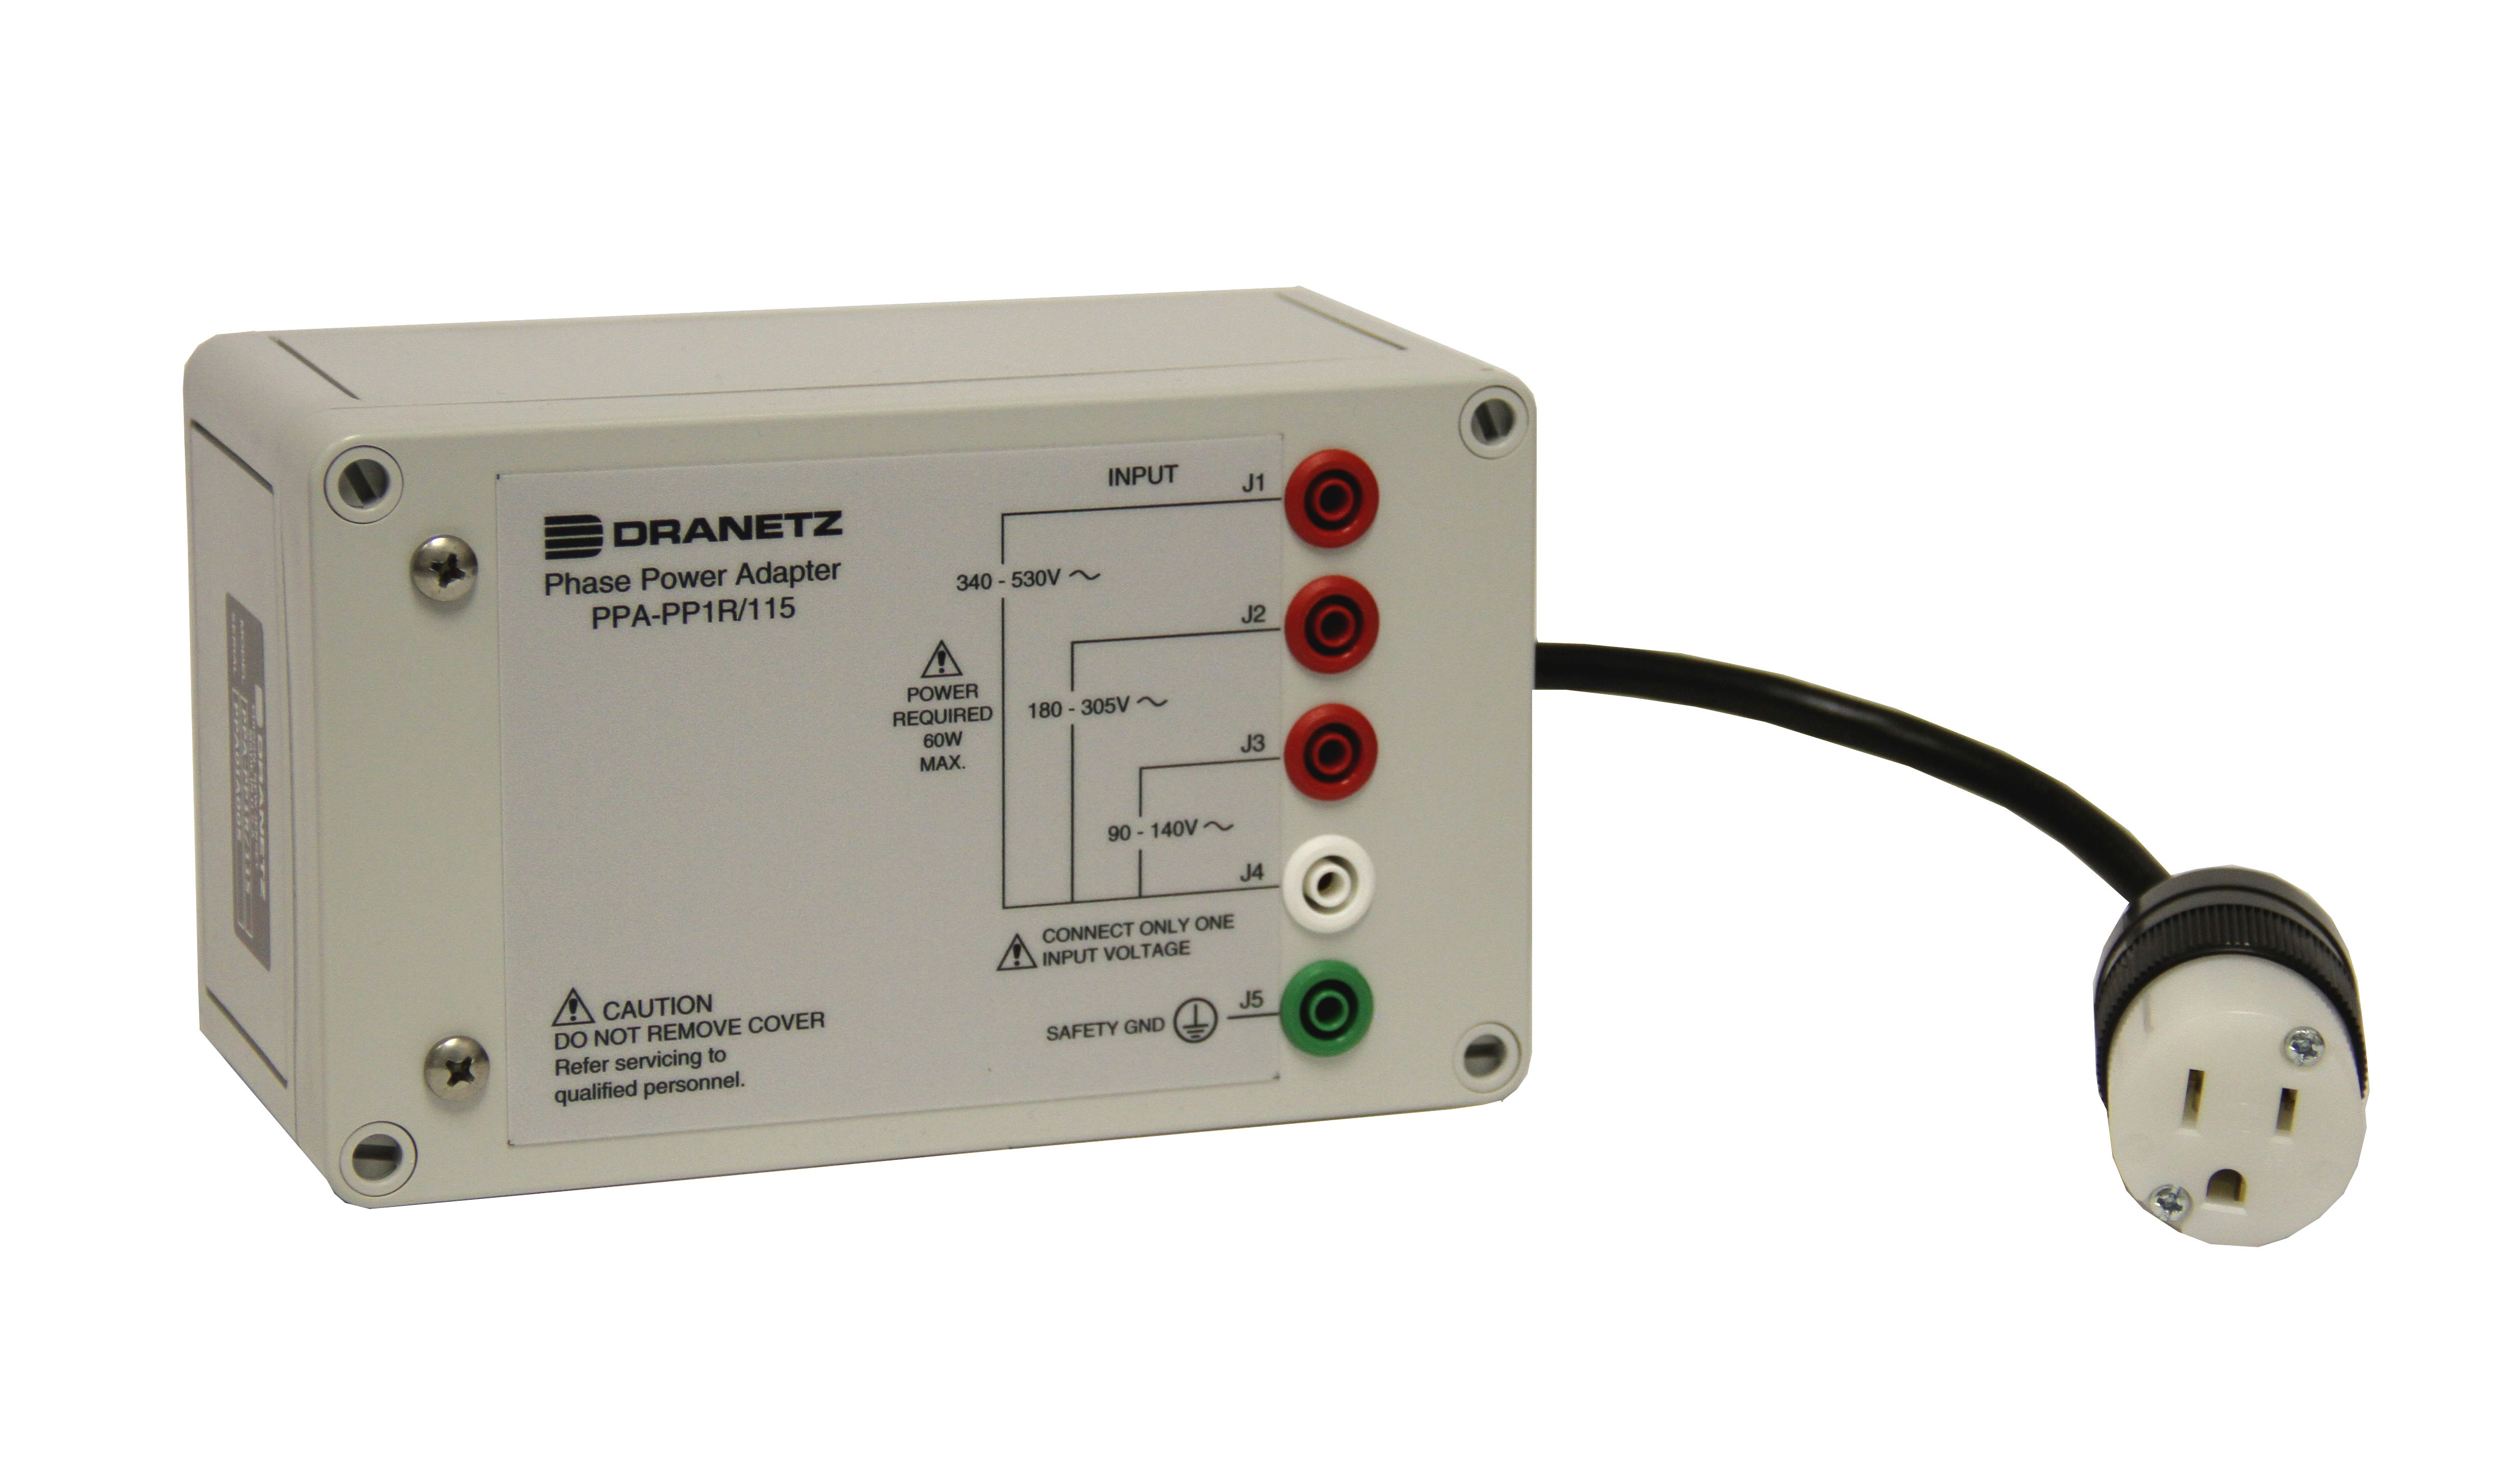 Dranetz PPA-PP1R-115 Phase Power Adapter